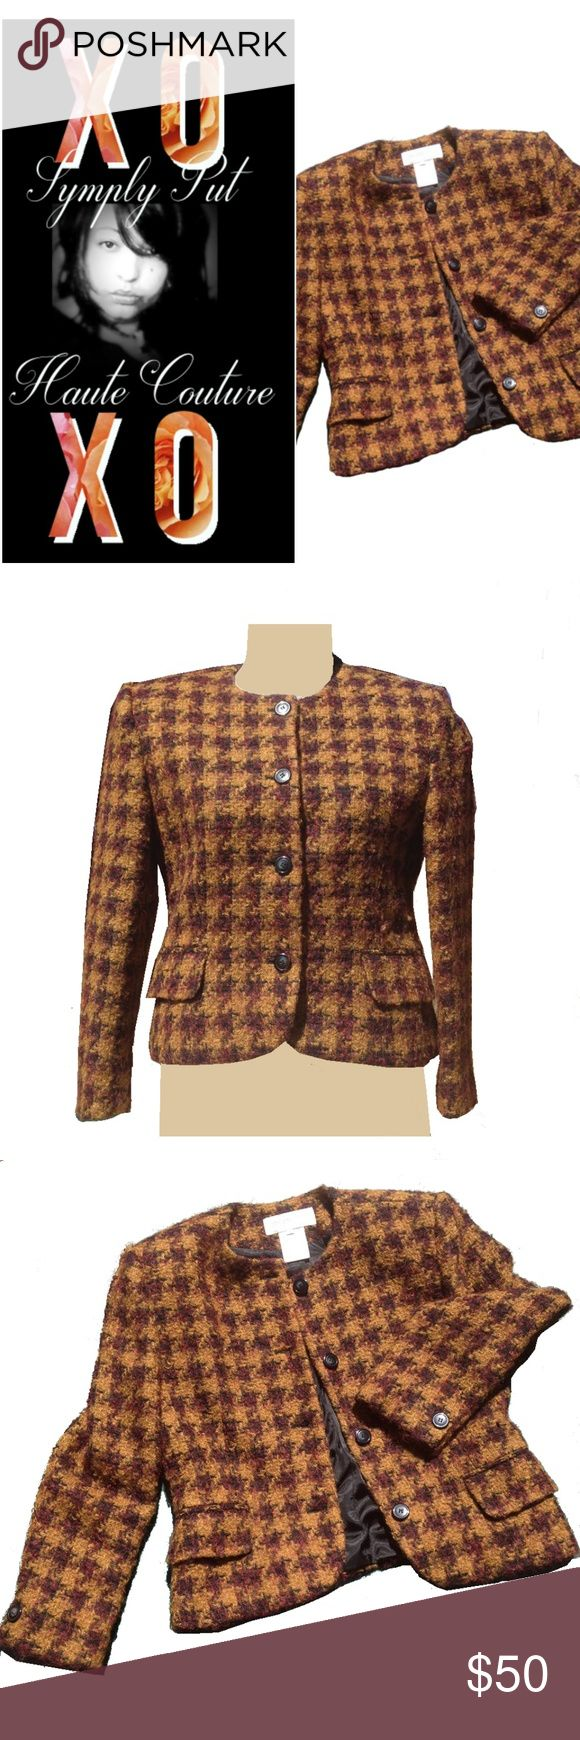 VINTAGE CHIC Wool Tweed Blazer -Caramel Black Plum Timeless vintage flair made modern in a snap paired with boyfriend button down shirt, classic chino shorts, and slides, a graphic tank, rolled cuff distressed denims, and booties or with a lacey bralette top, leather pencil skirt, and strappy stiletto heels. Working pockets. Padded shoulders. Fully lined. 99% wool. RN 54050. Comparable creations by high-end brands retail $150–$4K+. No holds/trades/off app transactions- firm. All sales…